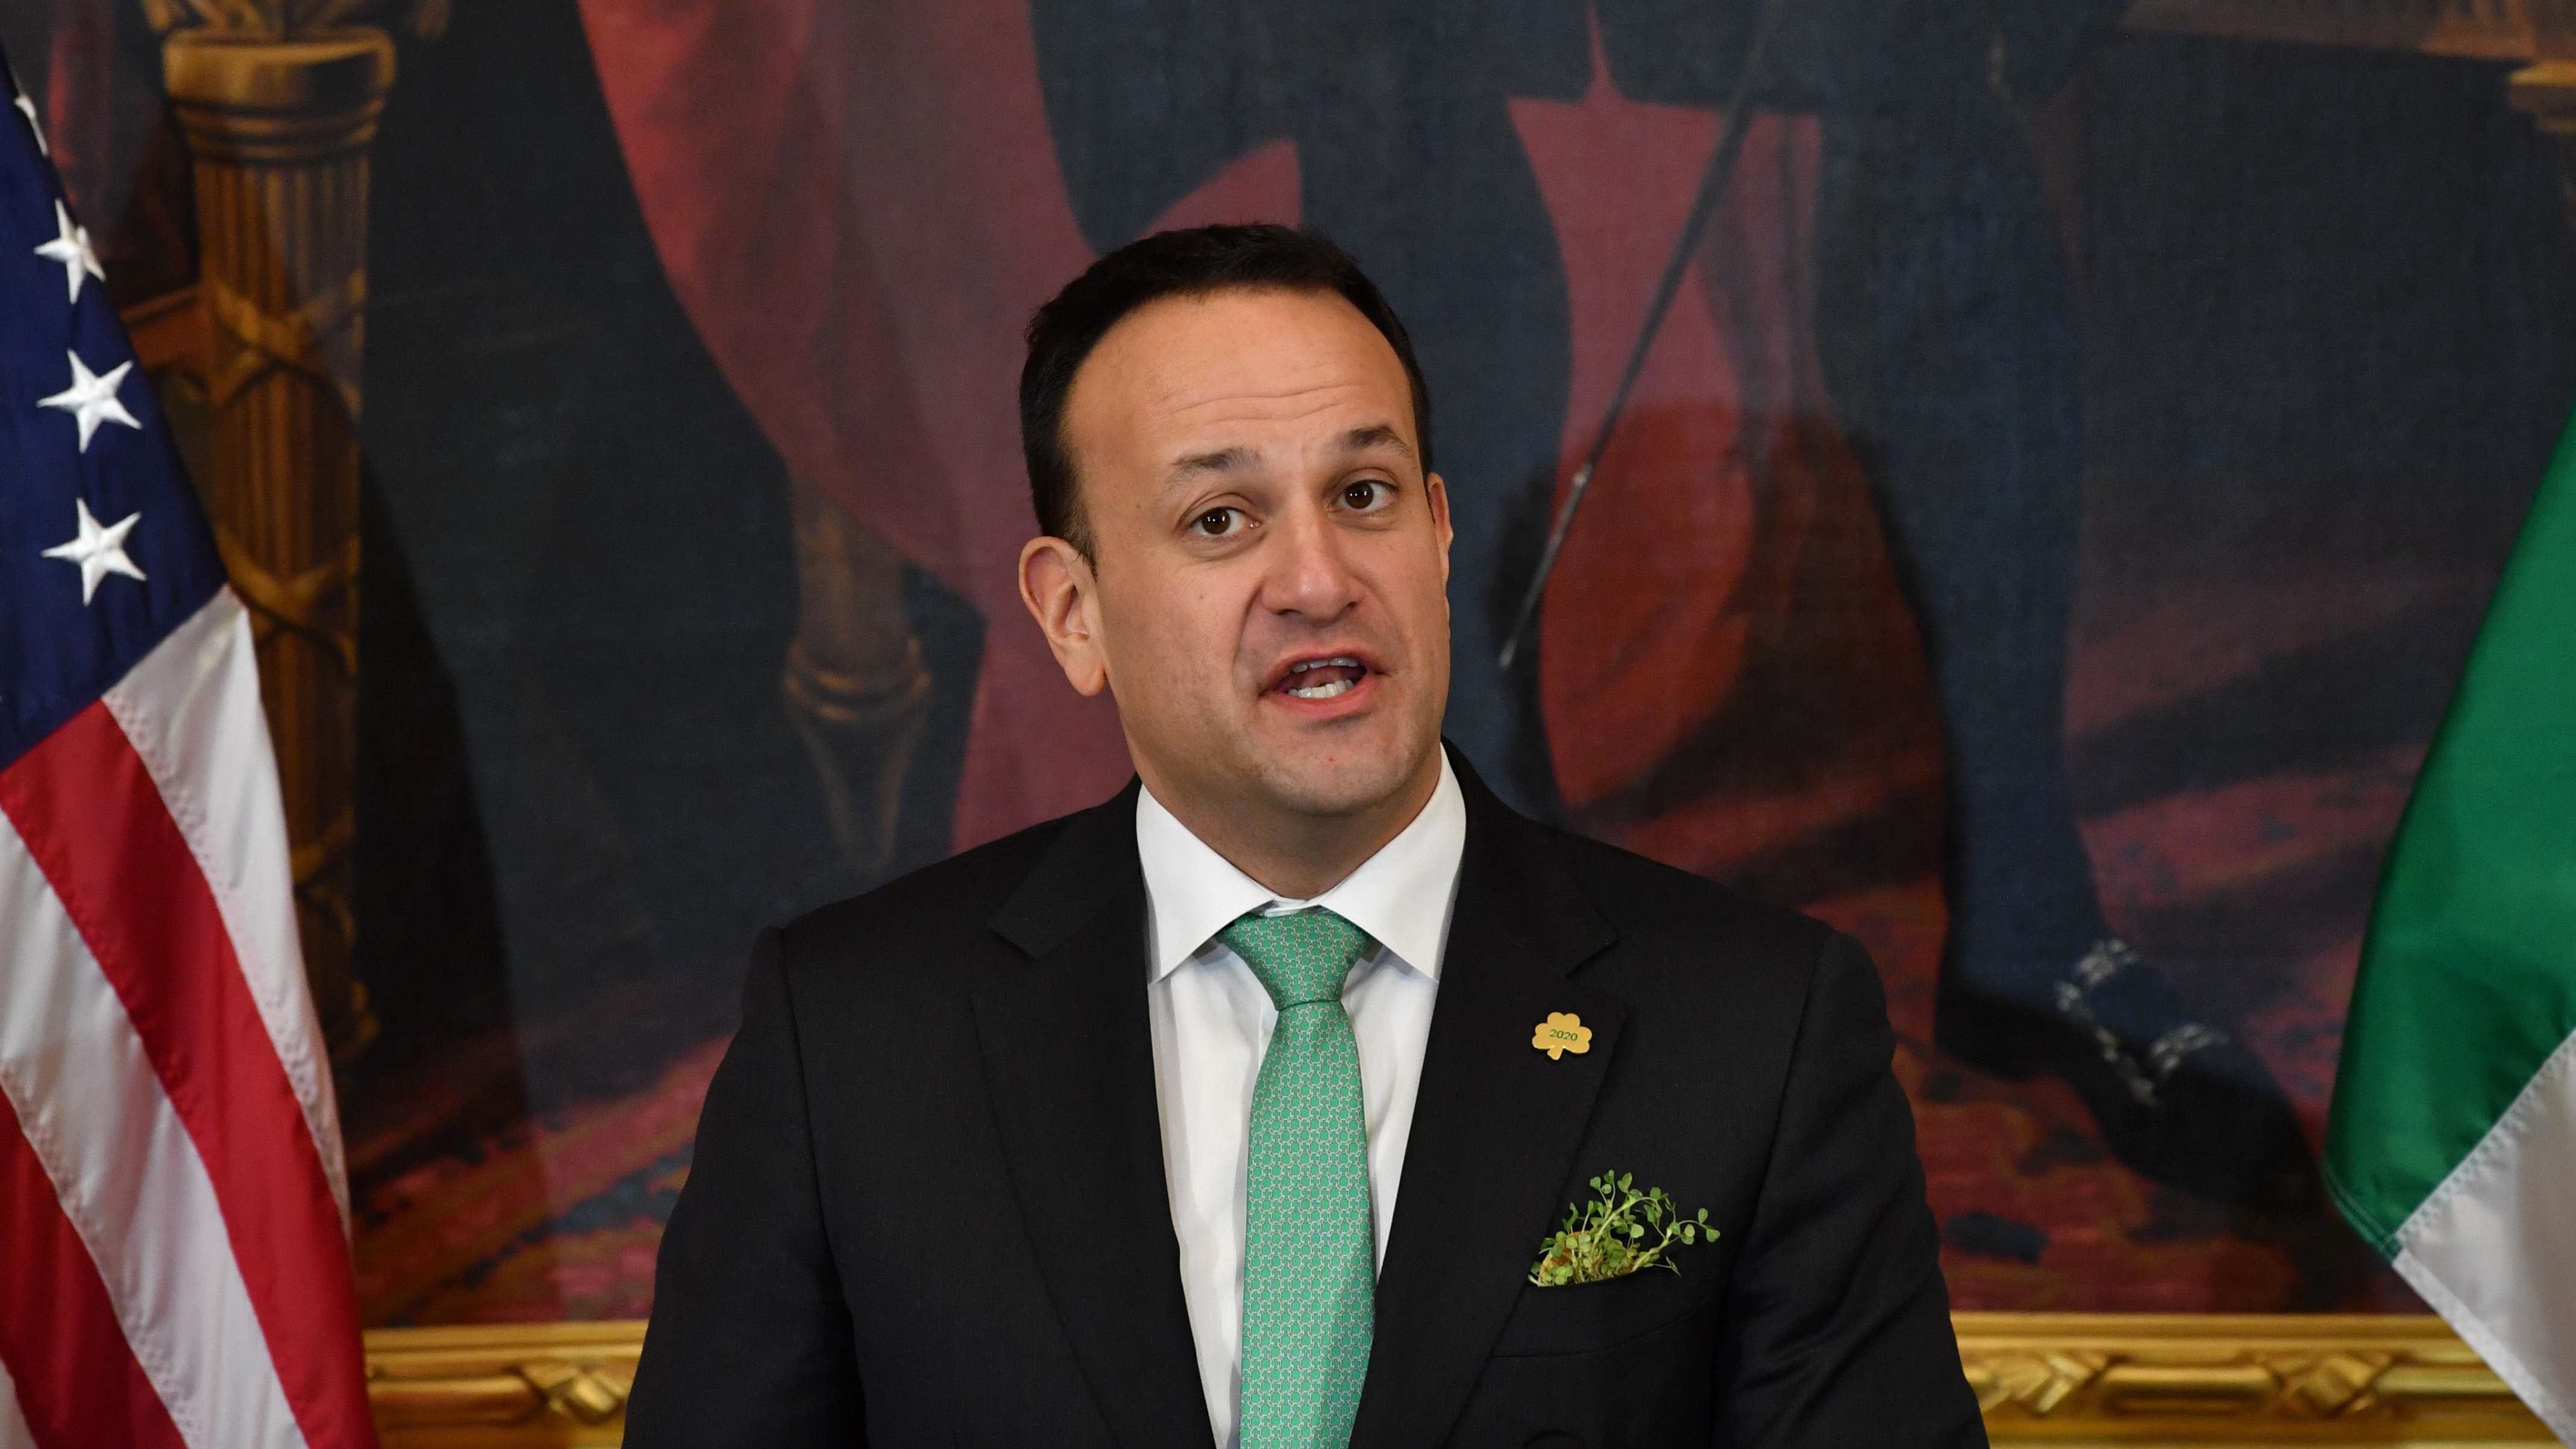 Irish Prime Minister Leo Varadkar speaks at the annual Friends Of Ireland luncheon hosted by the United States Congress in Washington on March 12.